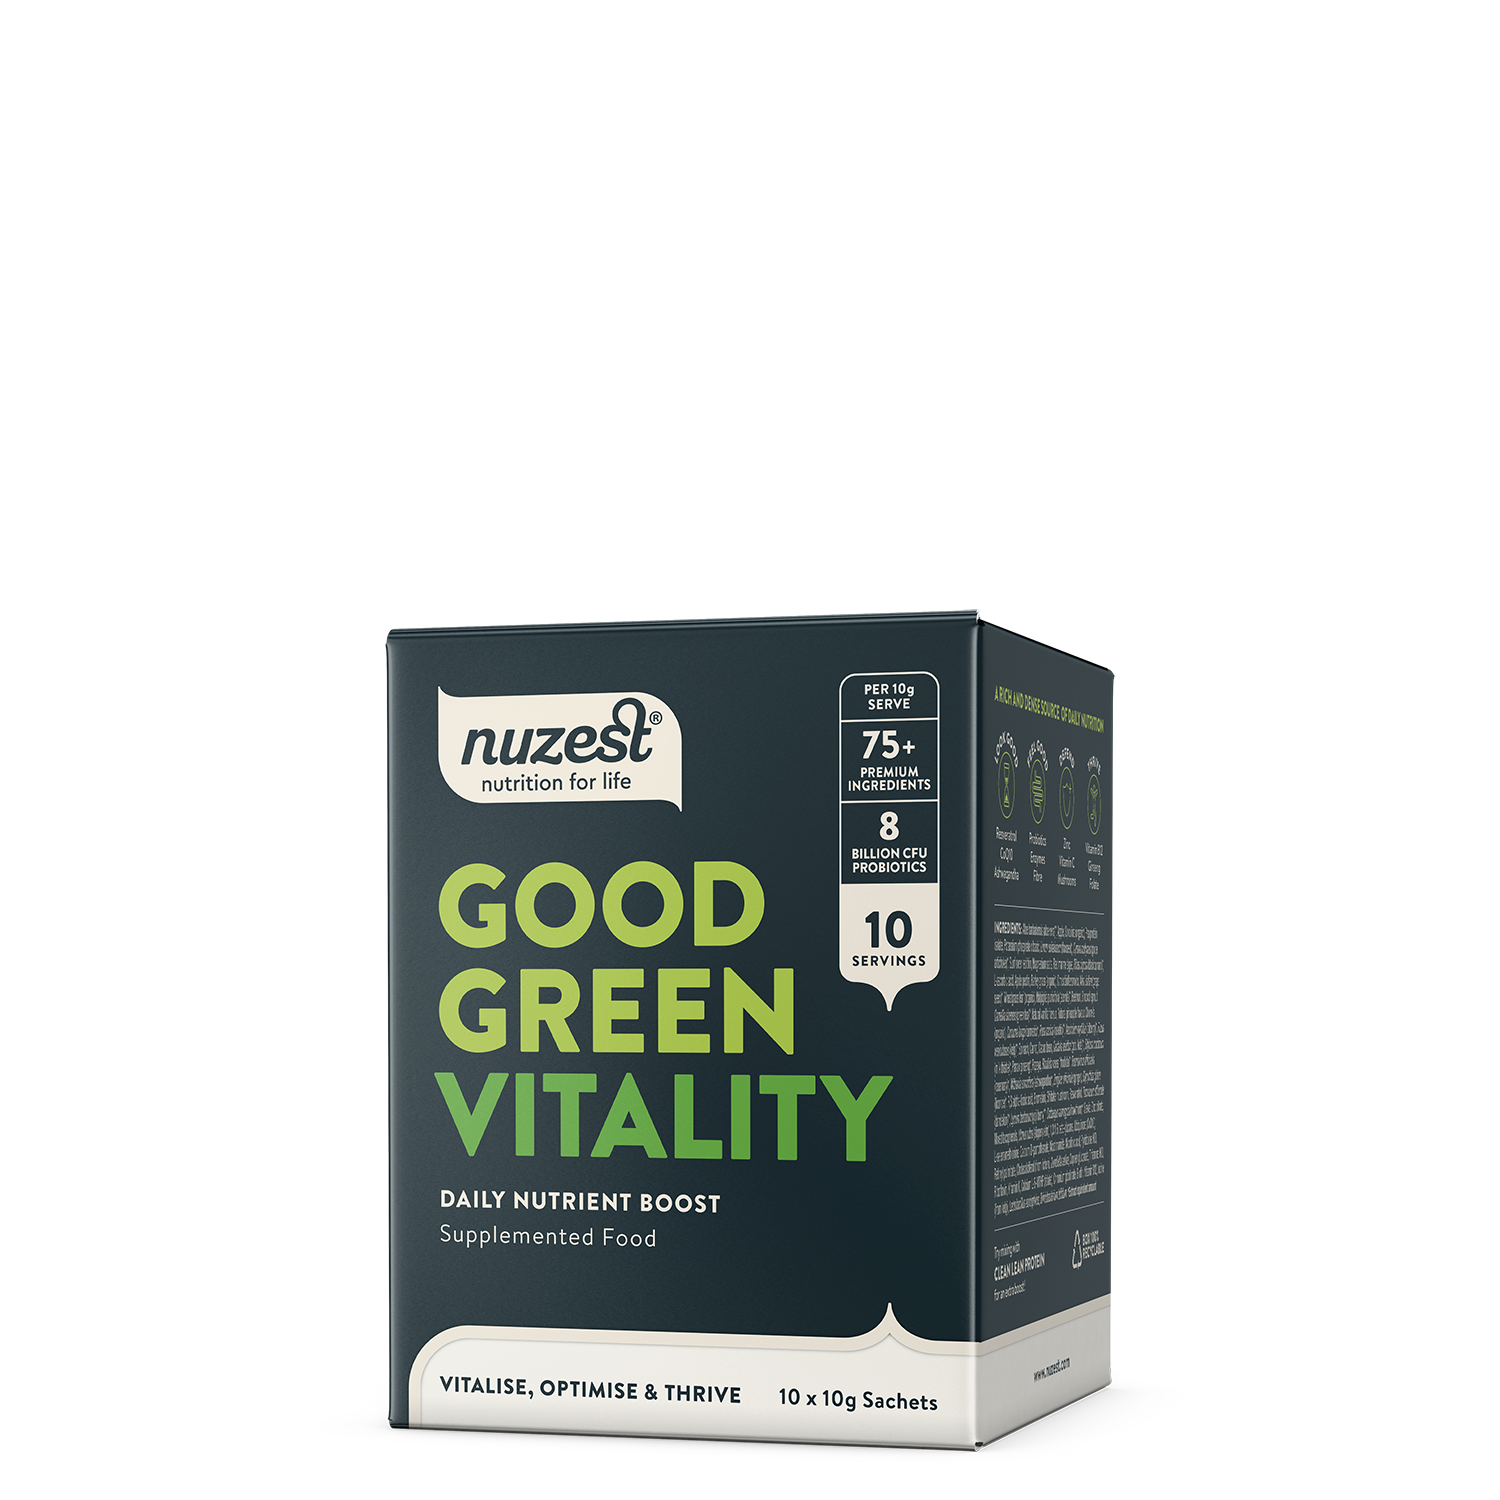 NuZest Good Green Vitality 10 x 10g Sachet Box